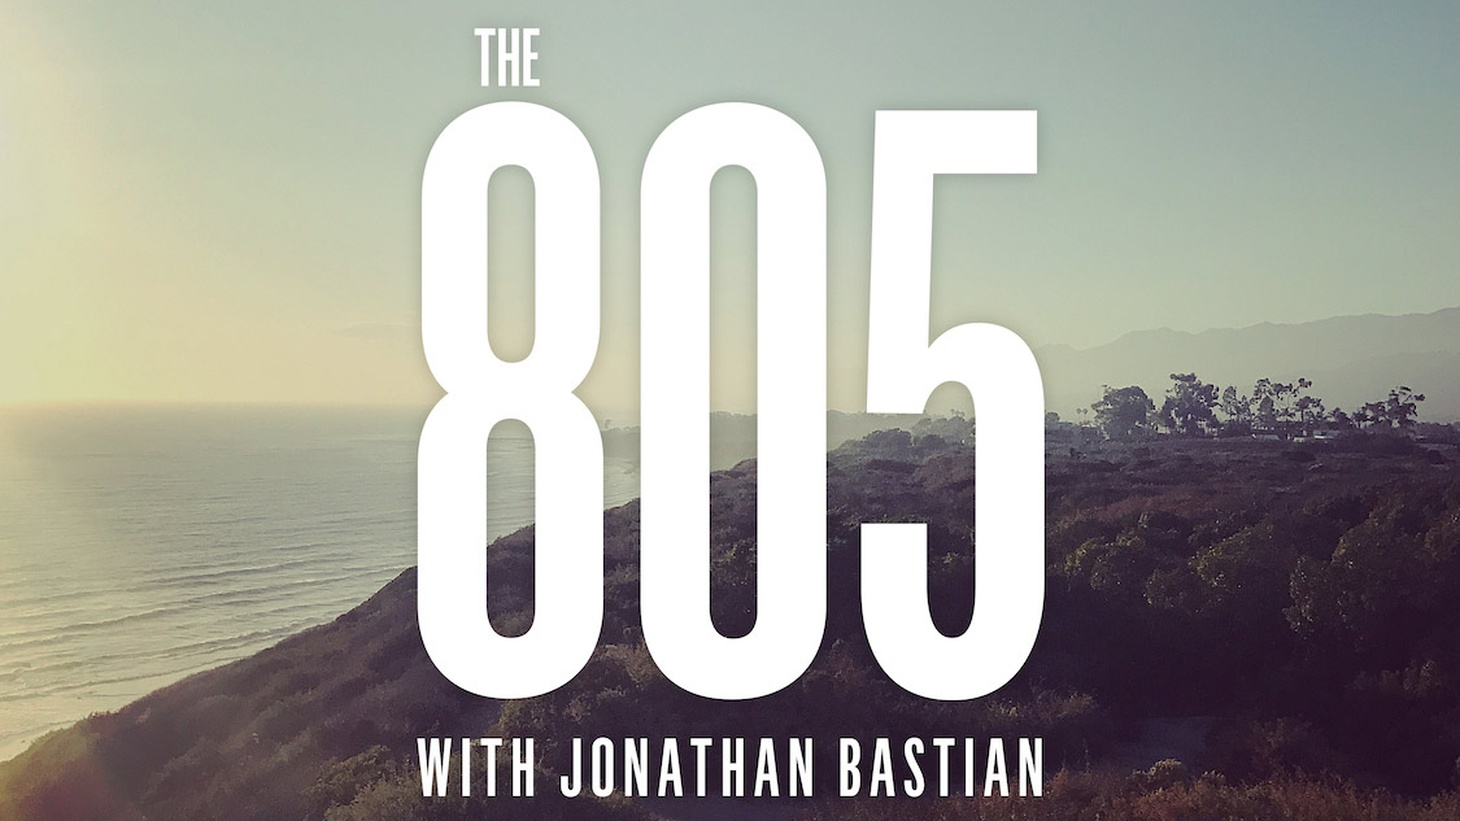 The 805 is a new show from KCRW Santa Barbara. Each week, join KCRW's Jonathan Bastian as he brings you closer to the people and stories shaping California's Central Coast. Take a listen to this sneak peek.